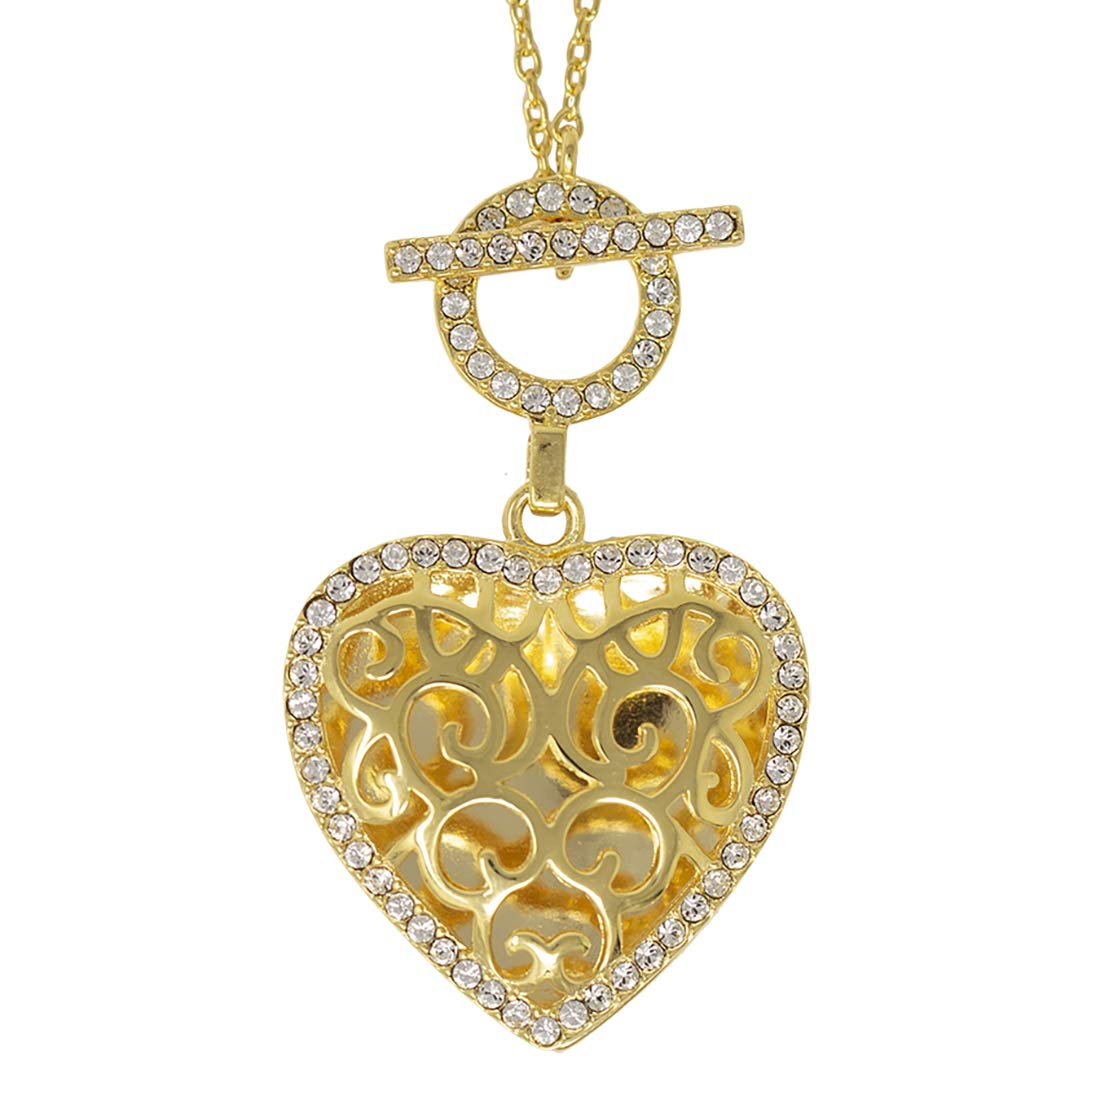 With You Lockets-Fine Yellow Gold-Custom Photo Locket Necklace-That Holds Pictures for Women-The Clara